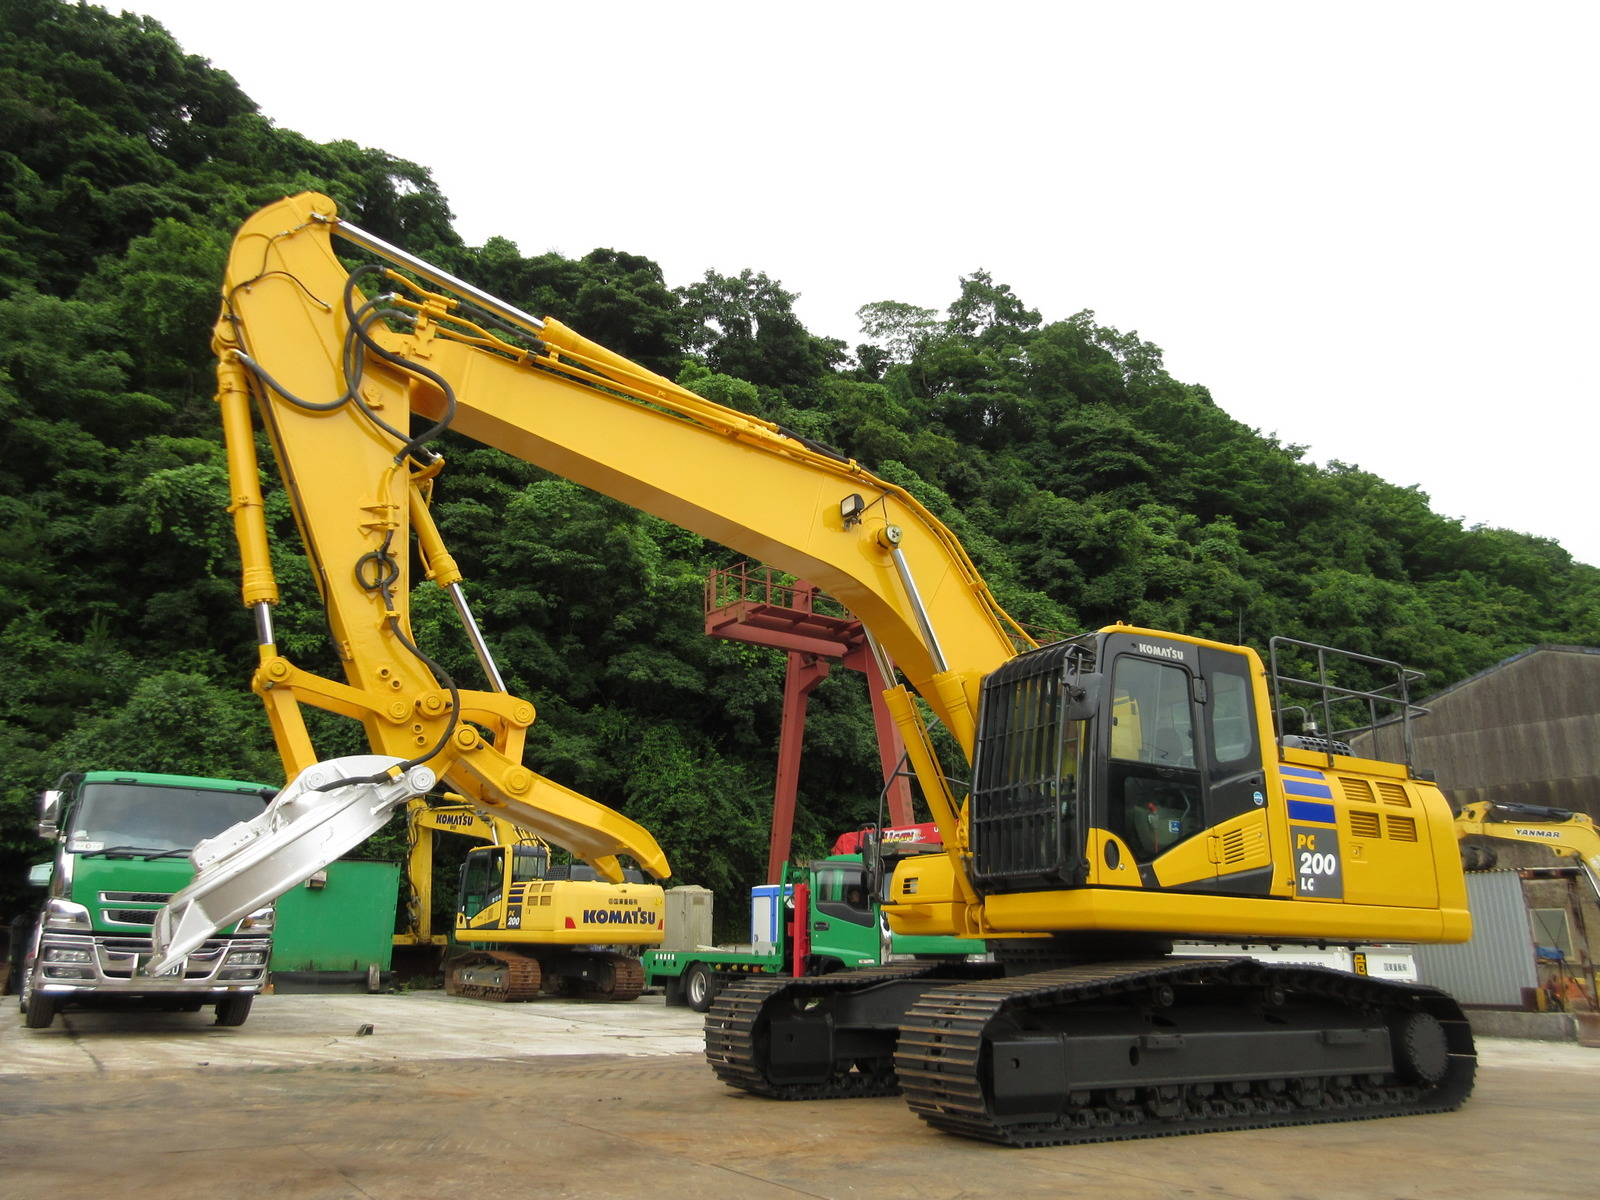 Used Construction Machine used Excavator KOMATSU PC200LC-10 Photos